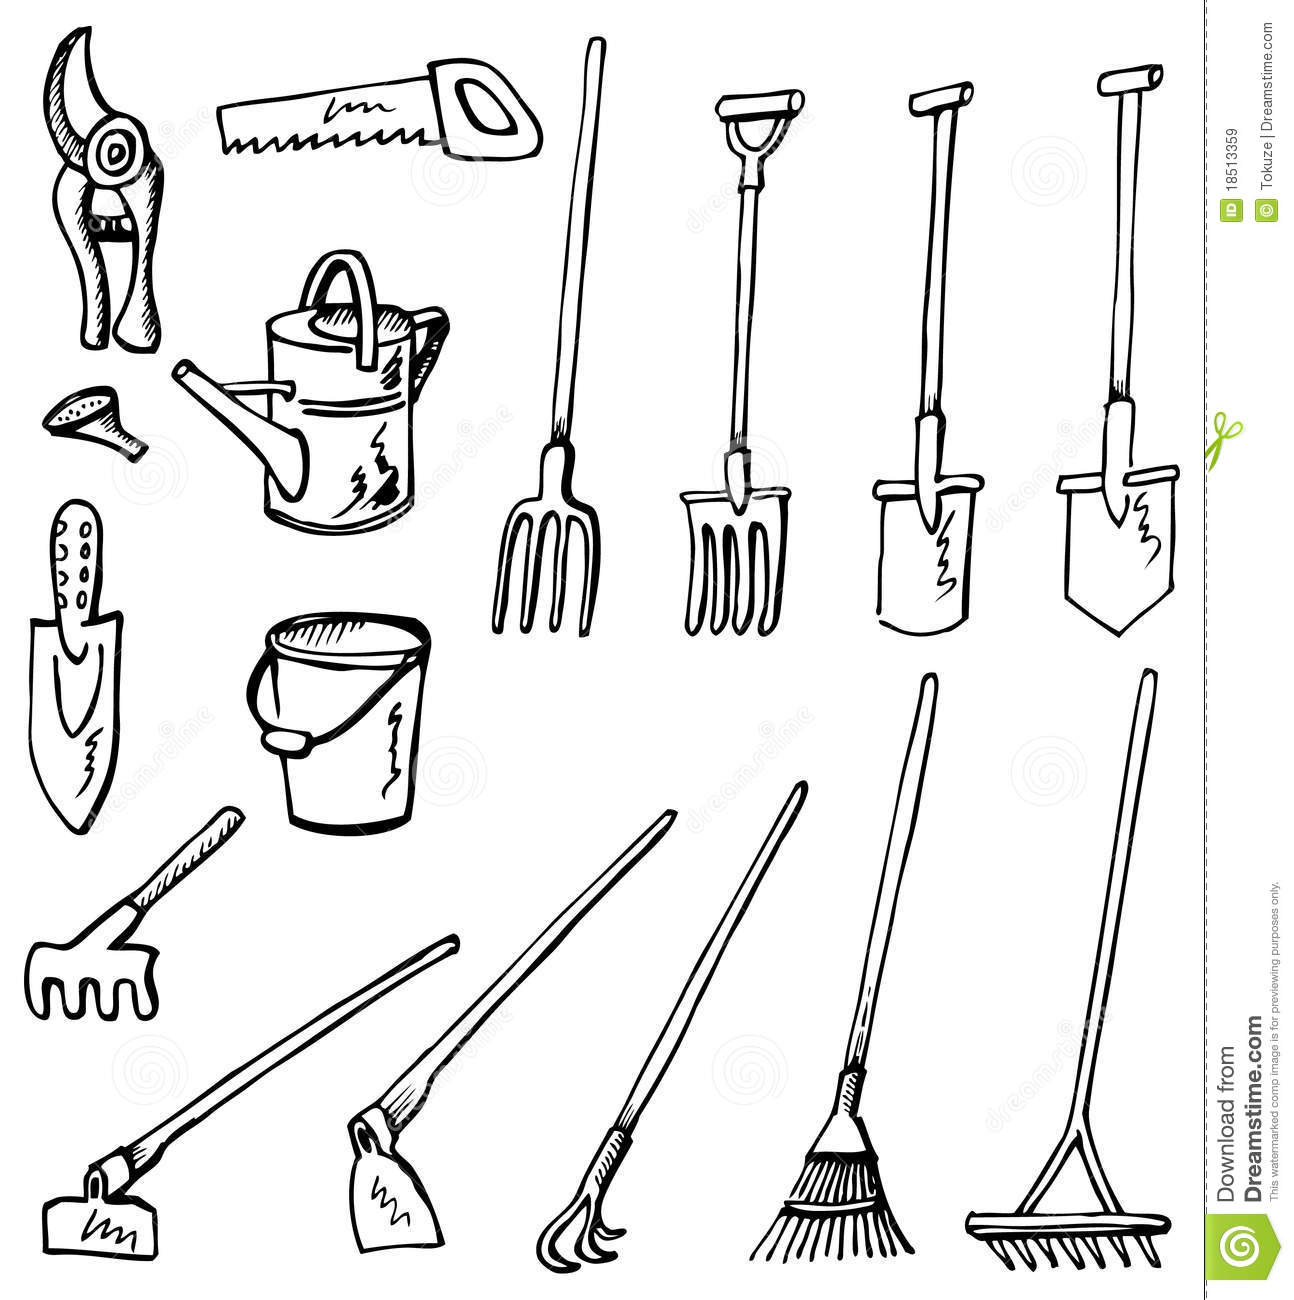 Gardening Tools Doodles Royalty Free Stock Images Image